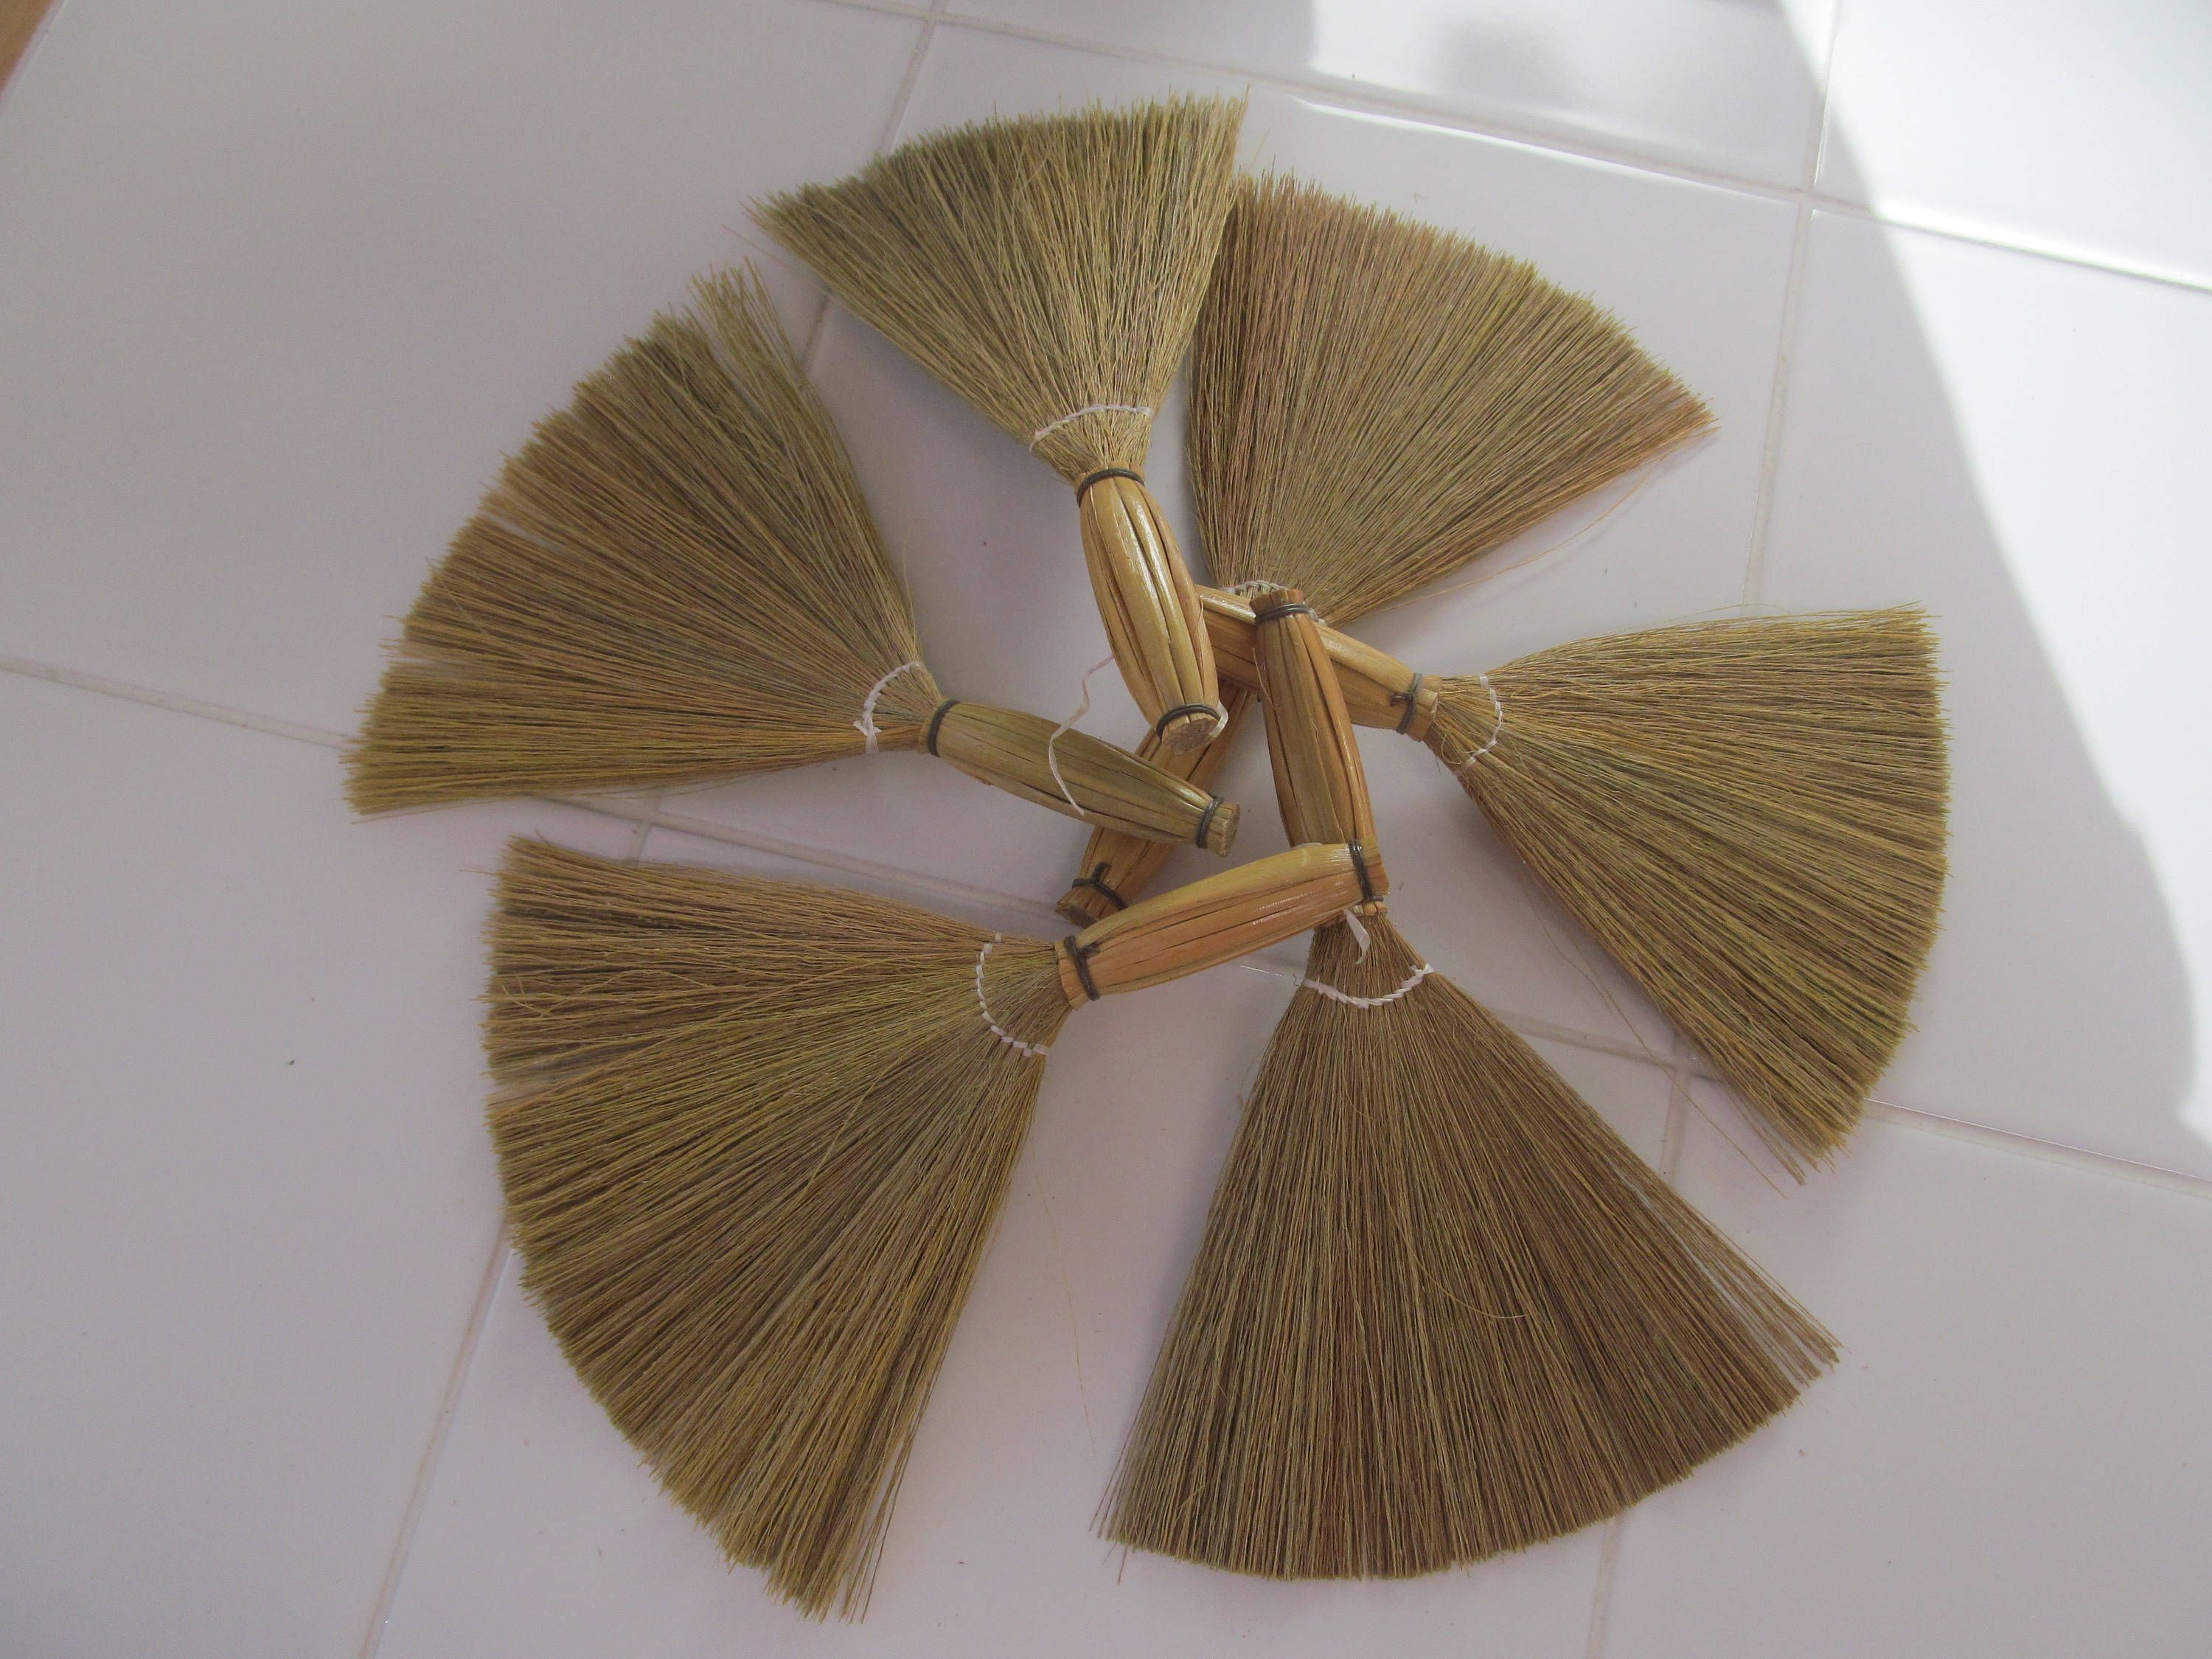 Set of 6 Mini Brooms for Wedding Favors or Craft Projects | Wedding Broom Favor | Broom Dolls #broomdolls